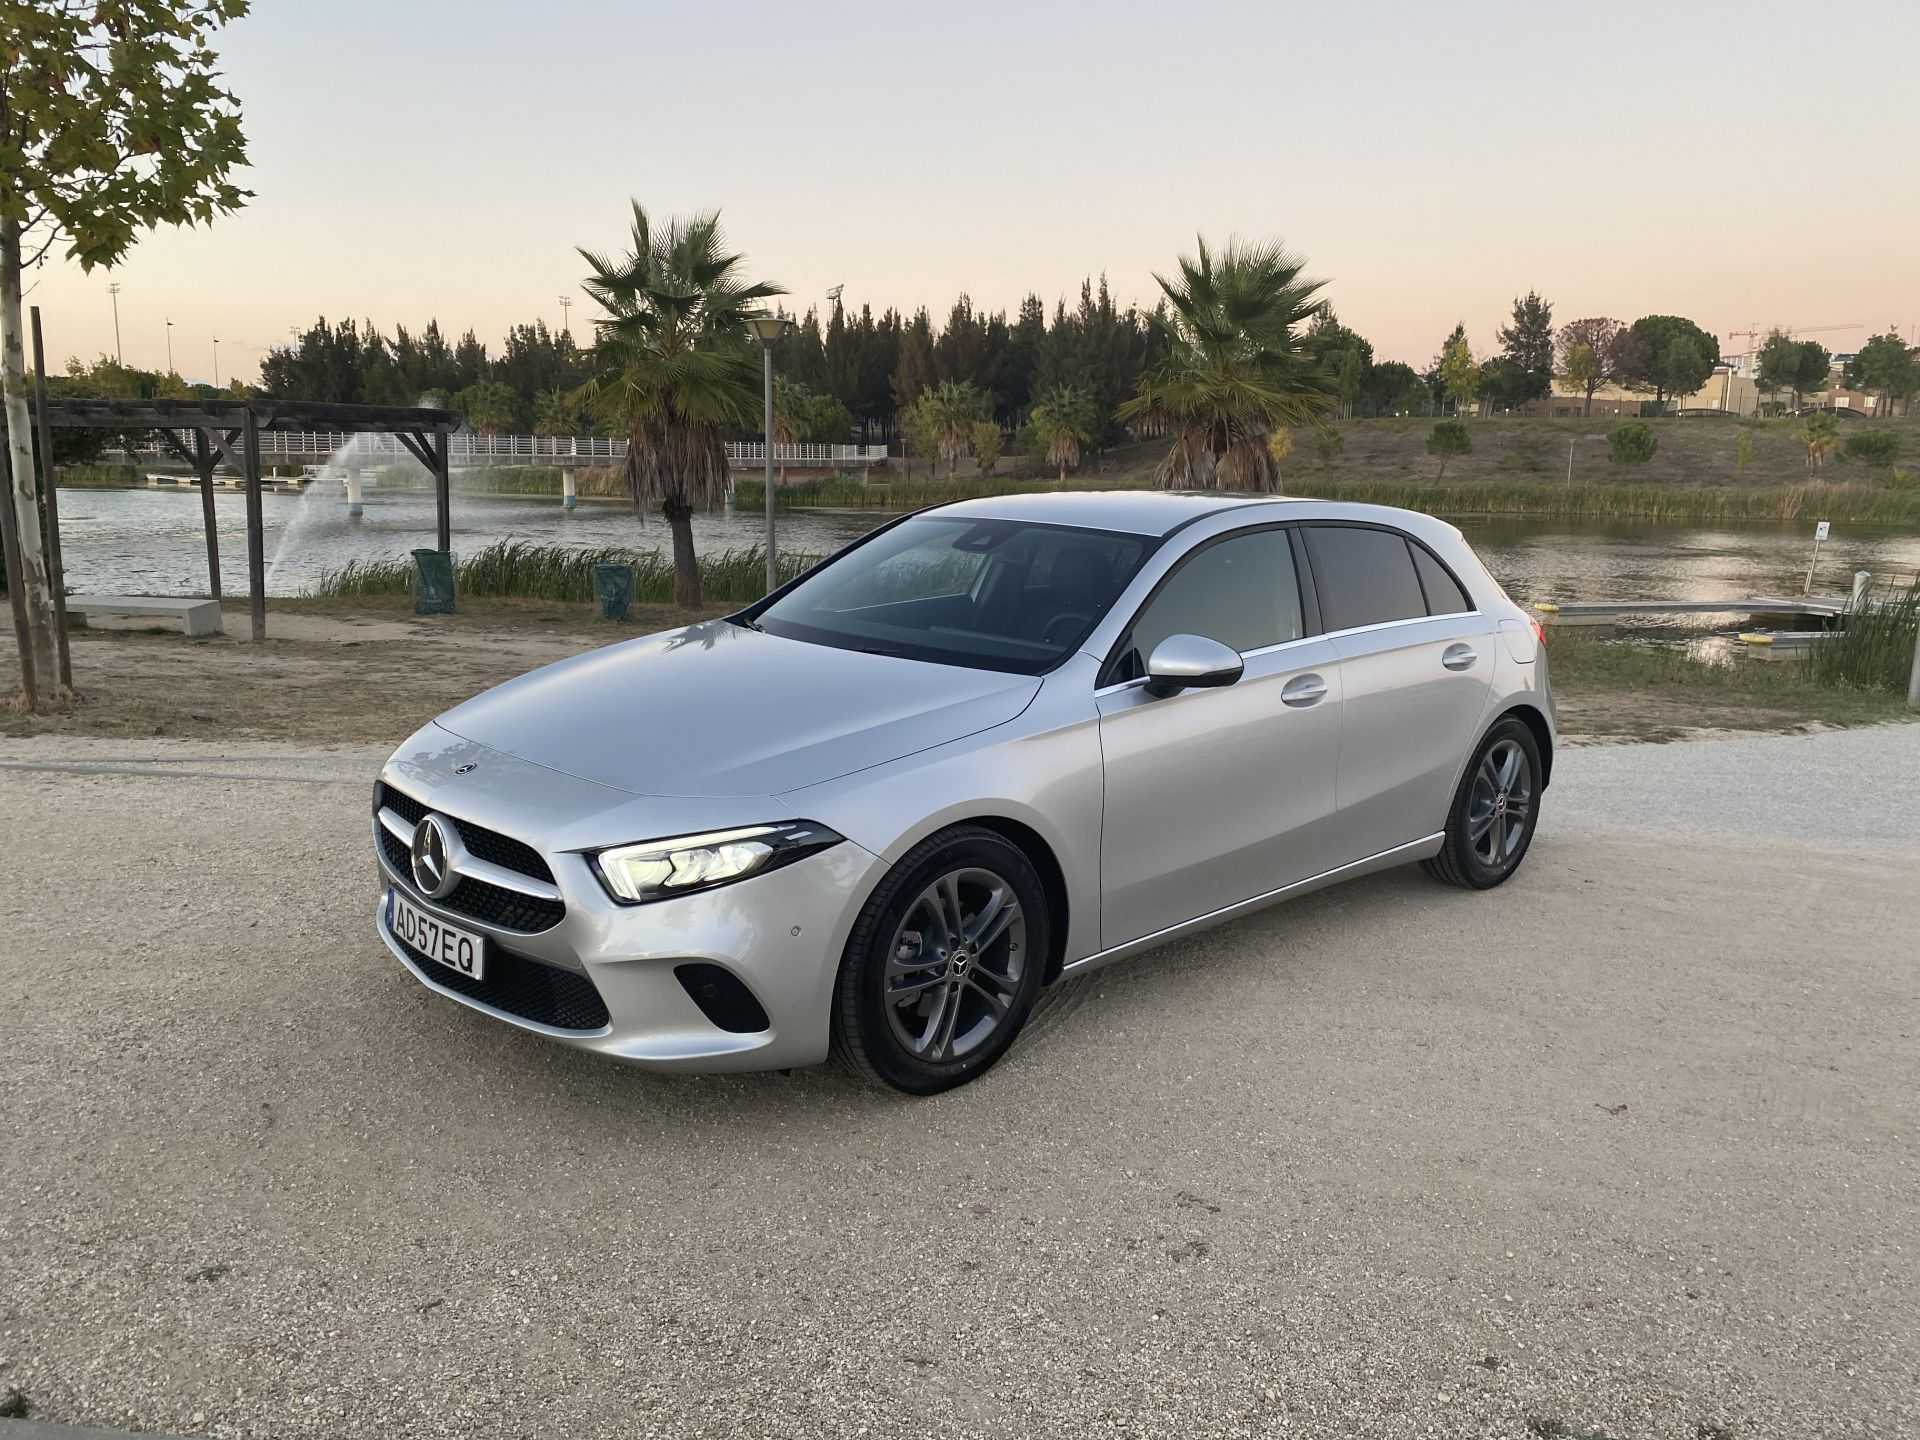 Mercedes Benz Classe A 180d Manual usada Castelo Branco